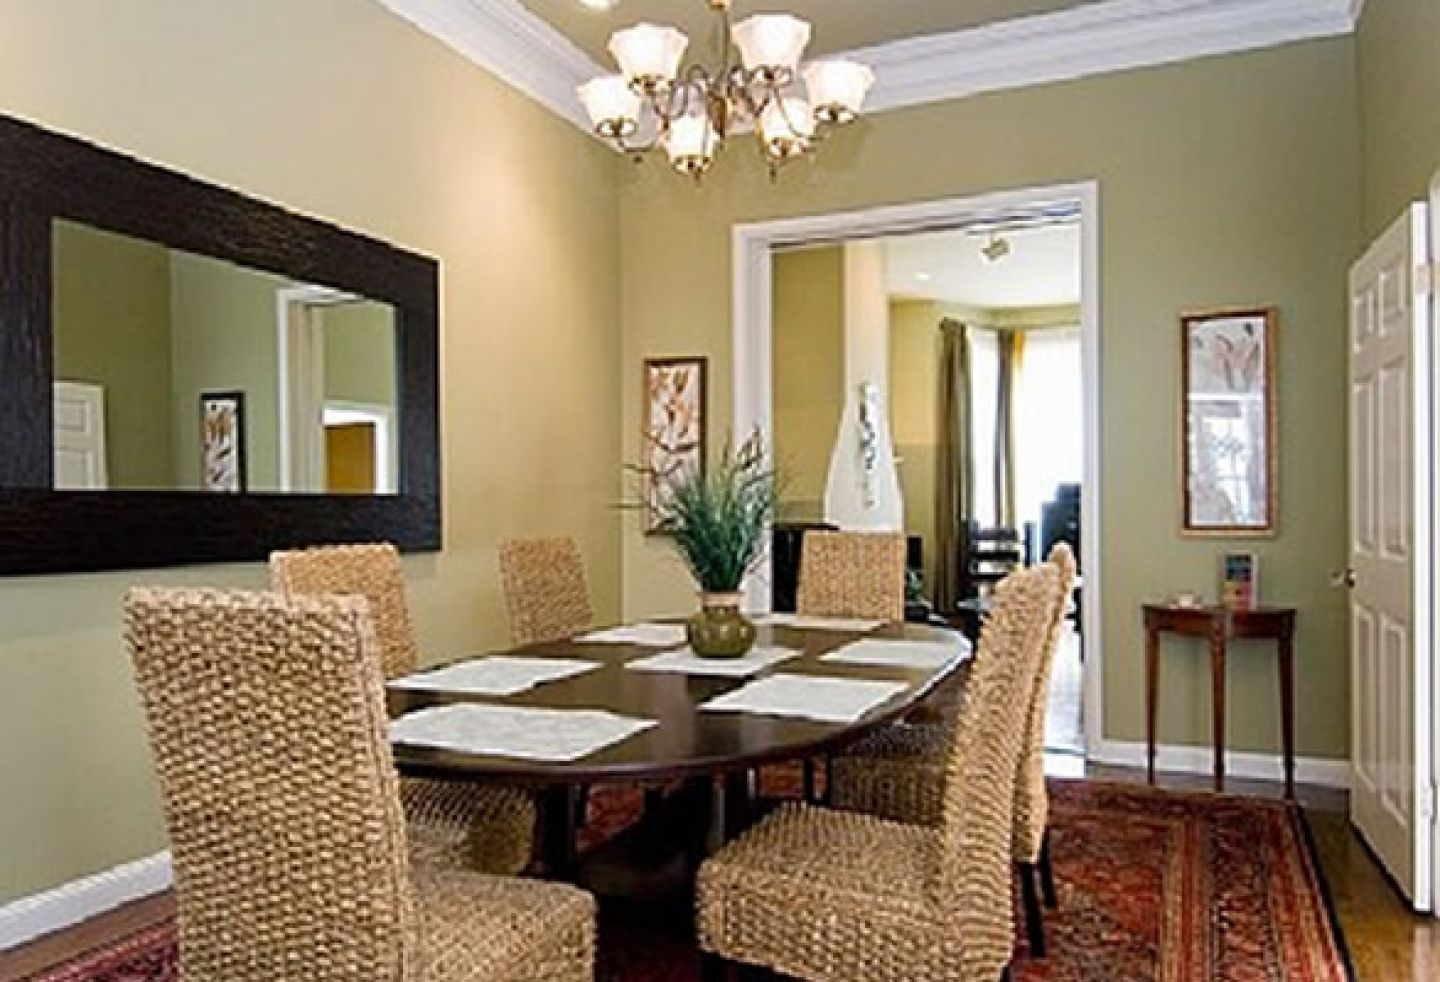 Small Dining Room Design Ideas saveemail alexandra immel residential design llc 19 reviews small dining room addition Nice Dining Room Ideas Dining Room Design Ideas